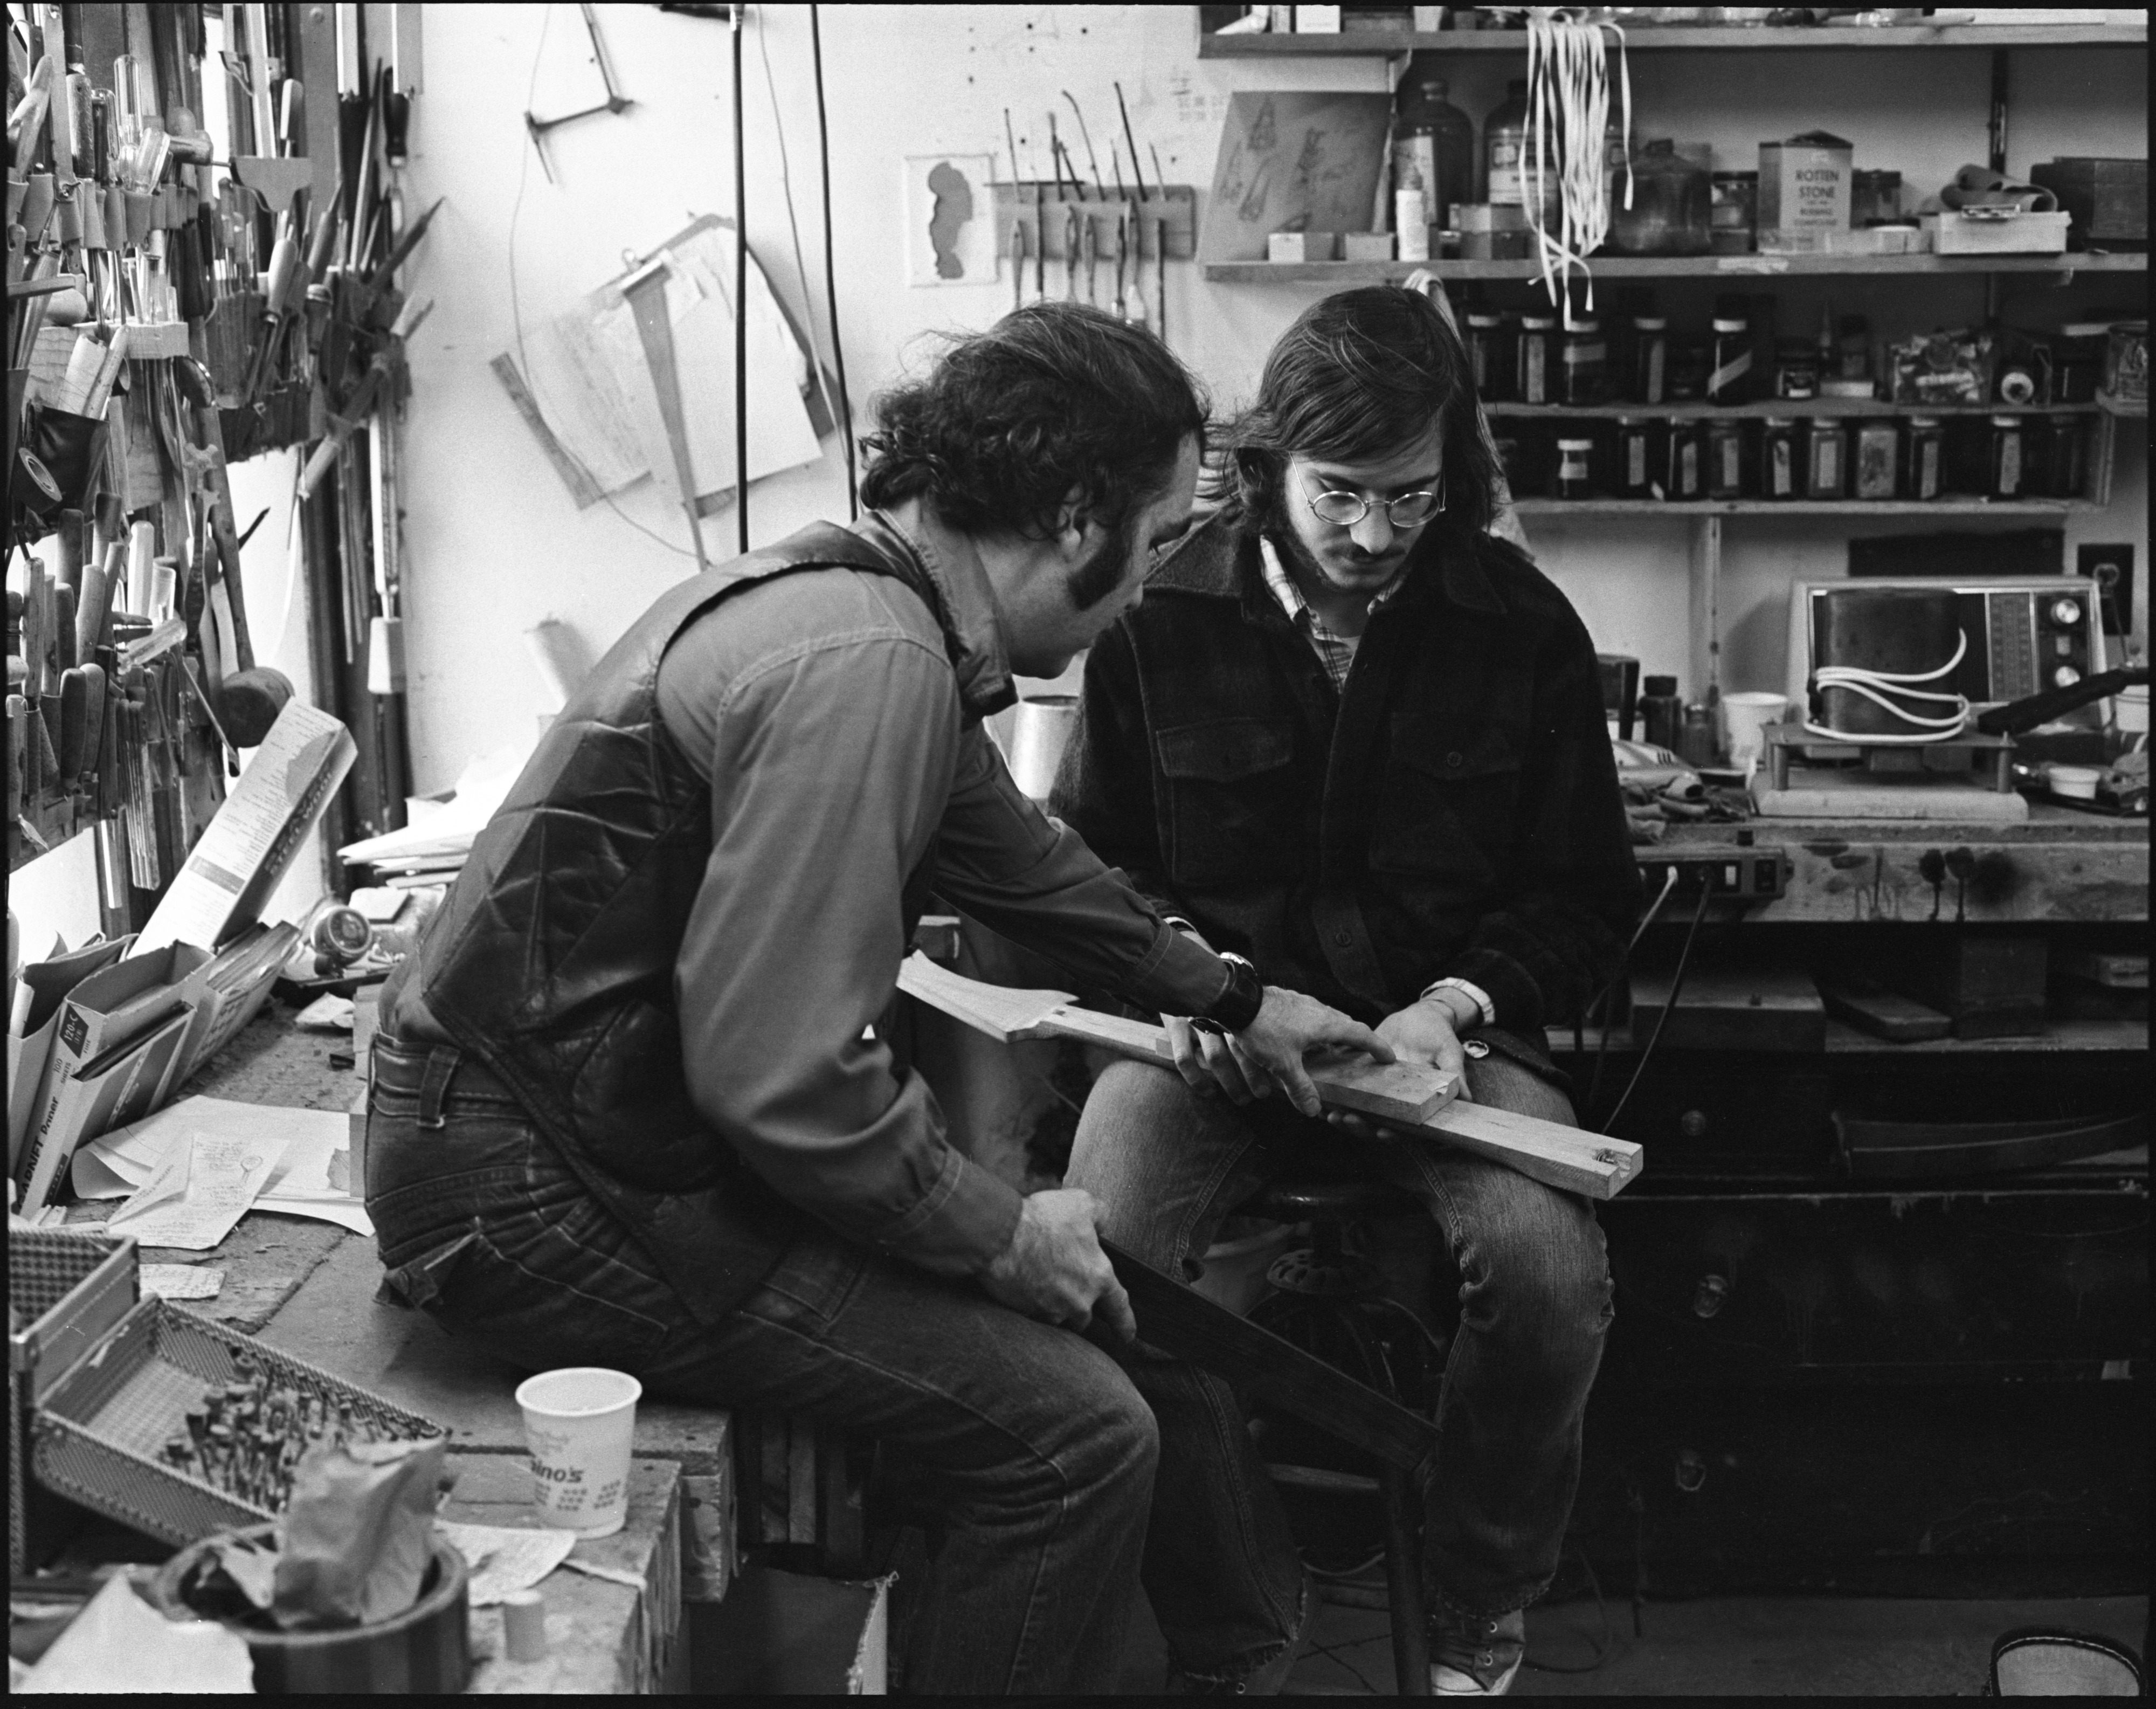 Herb David & Bruce Bartman Work On A Guitar In Community High School's Practical Art Program, April 1973 image